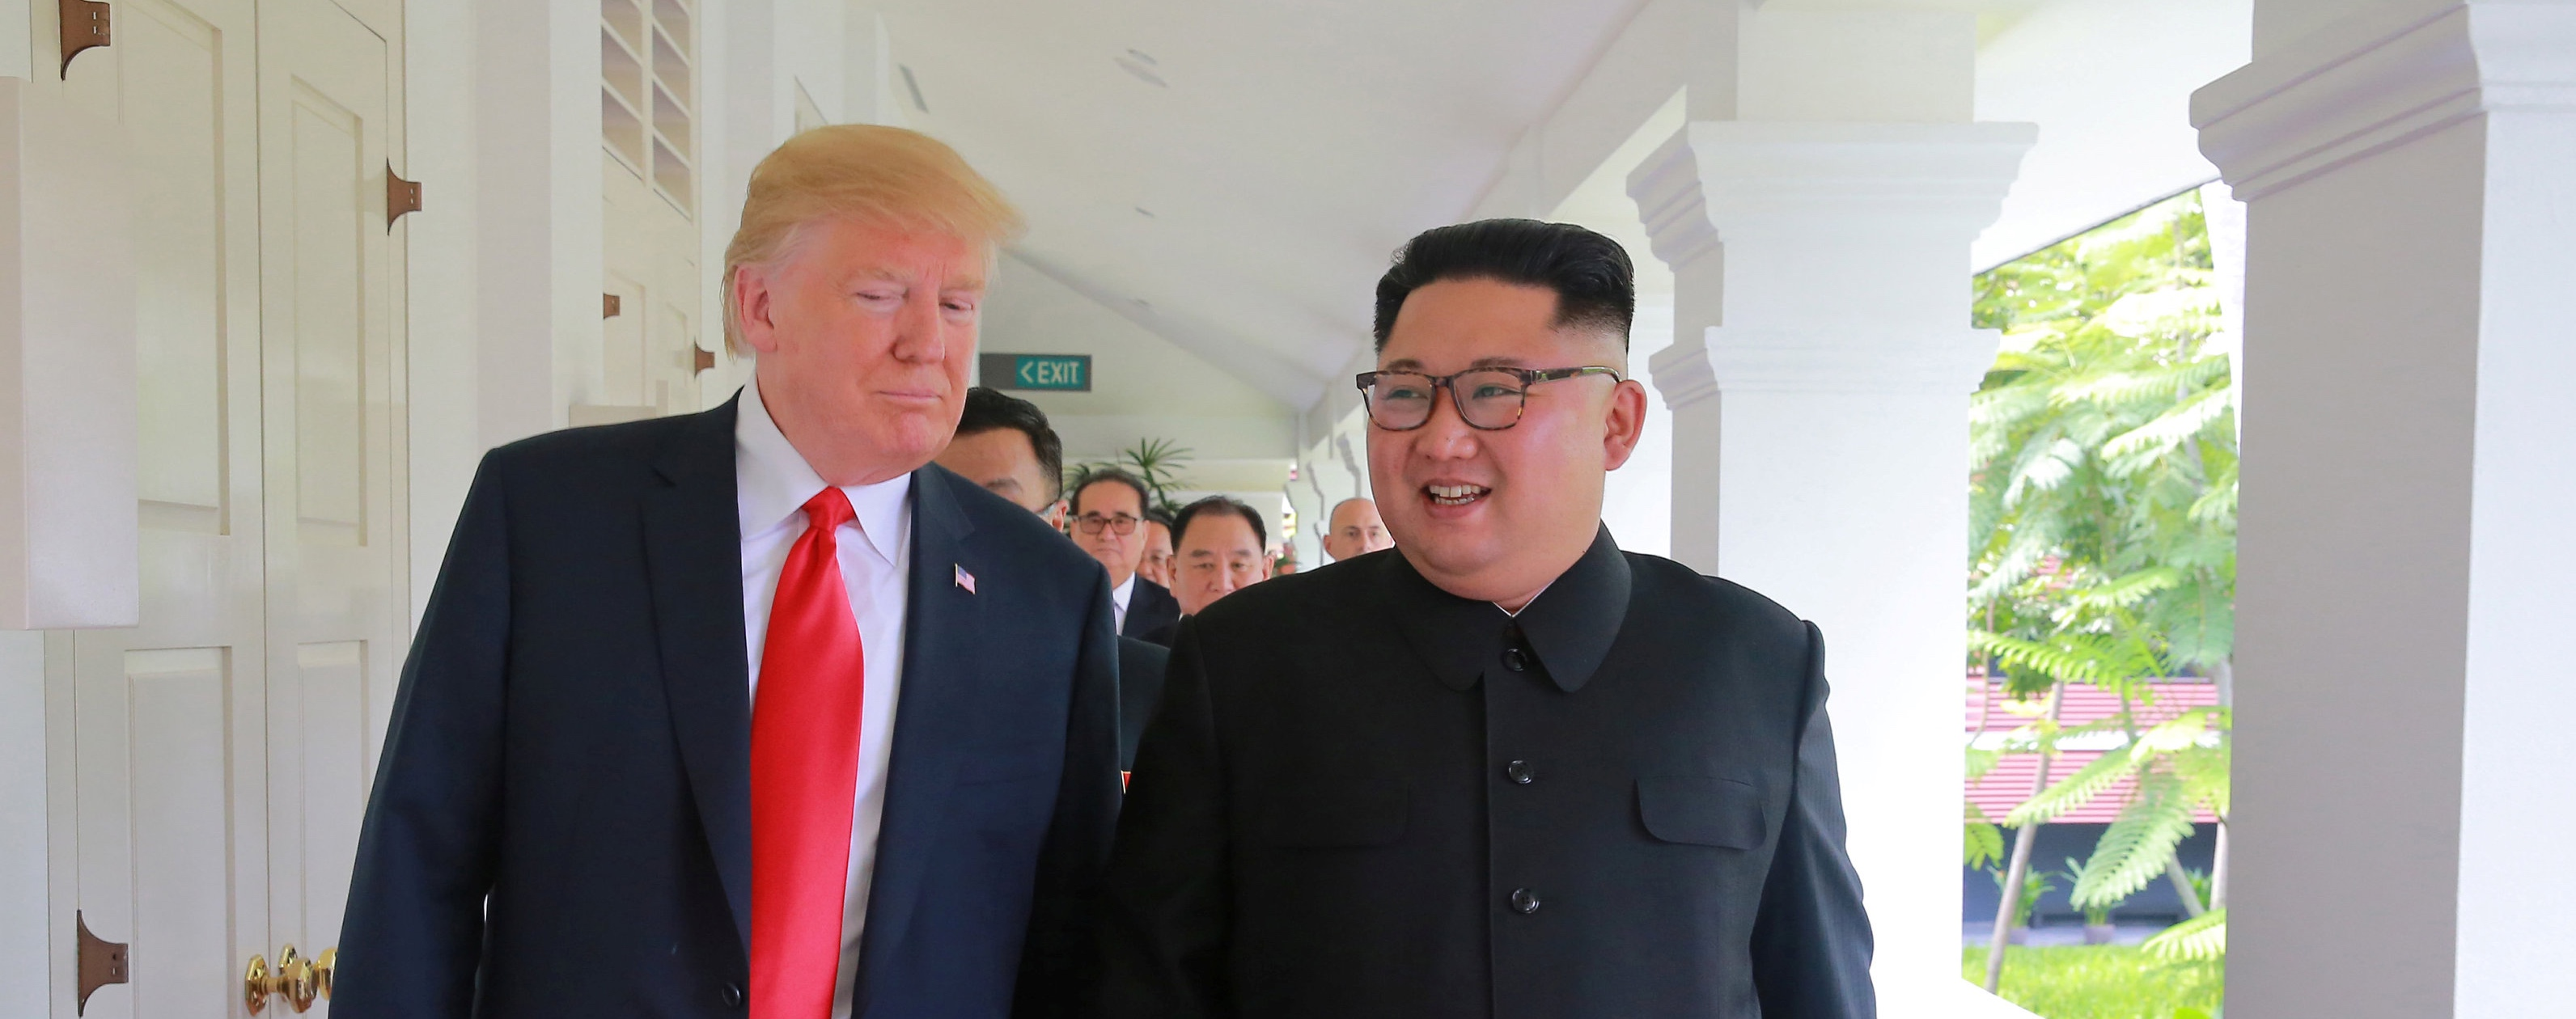 Interview: 'If Not for Donald Trump and Kim Jong-un, I Don't Think This Would Have Happened'